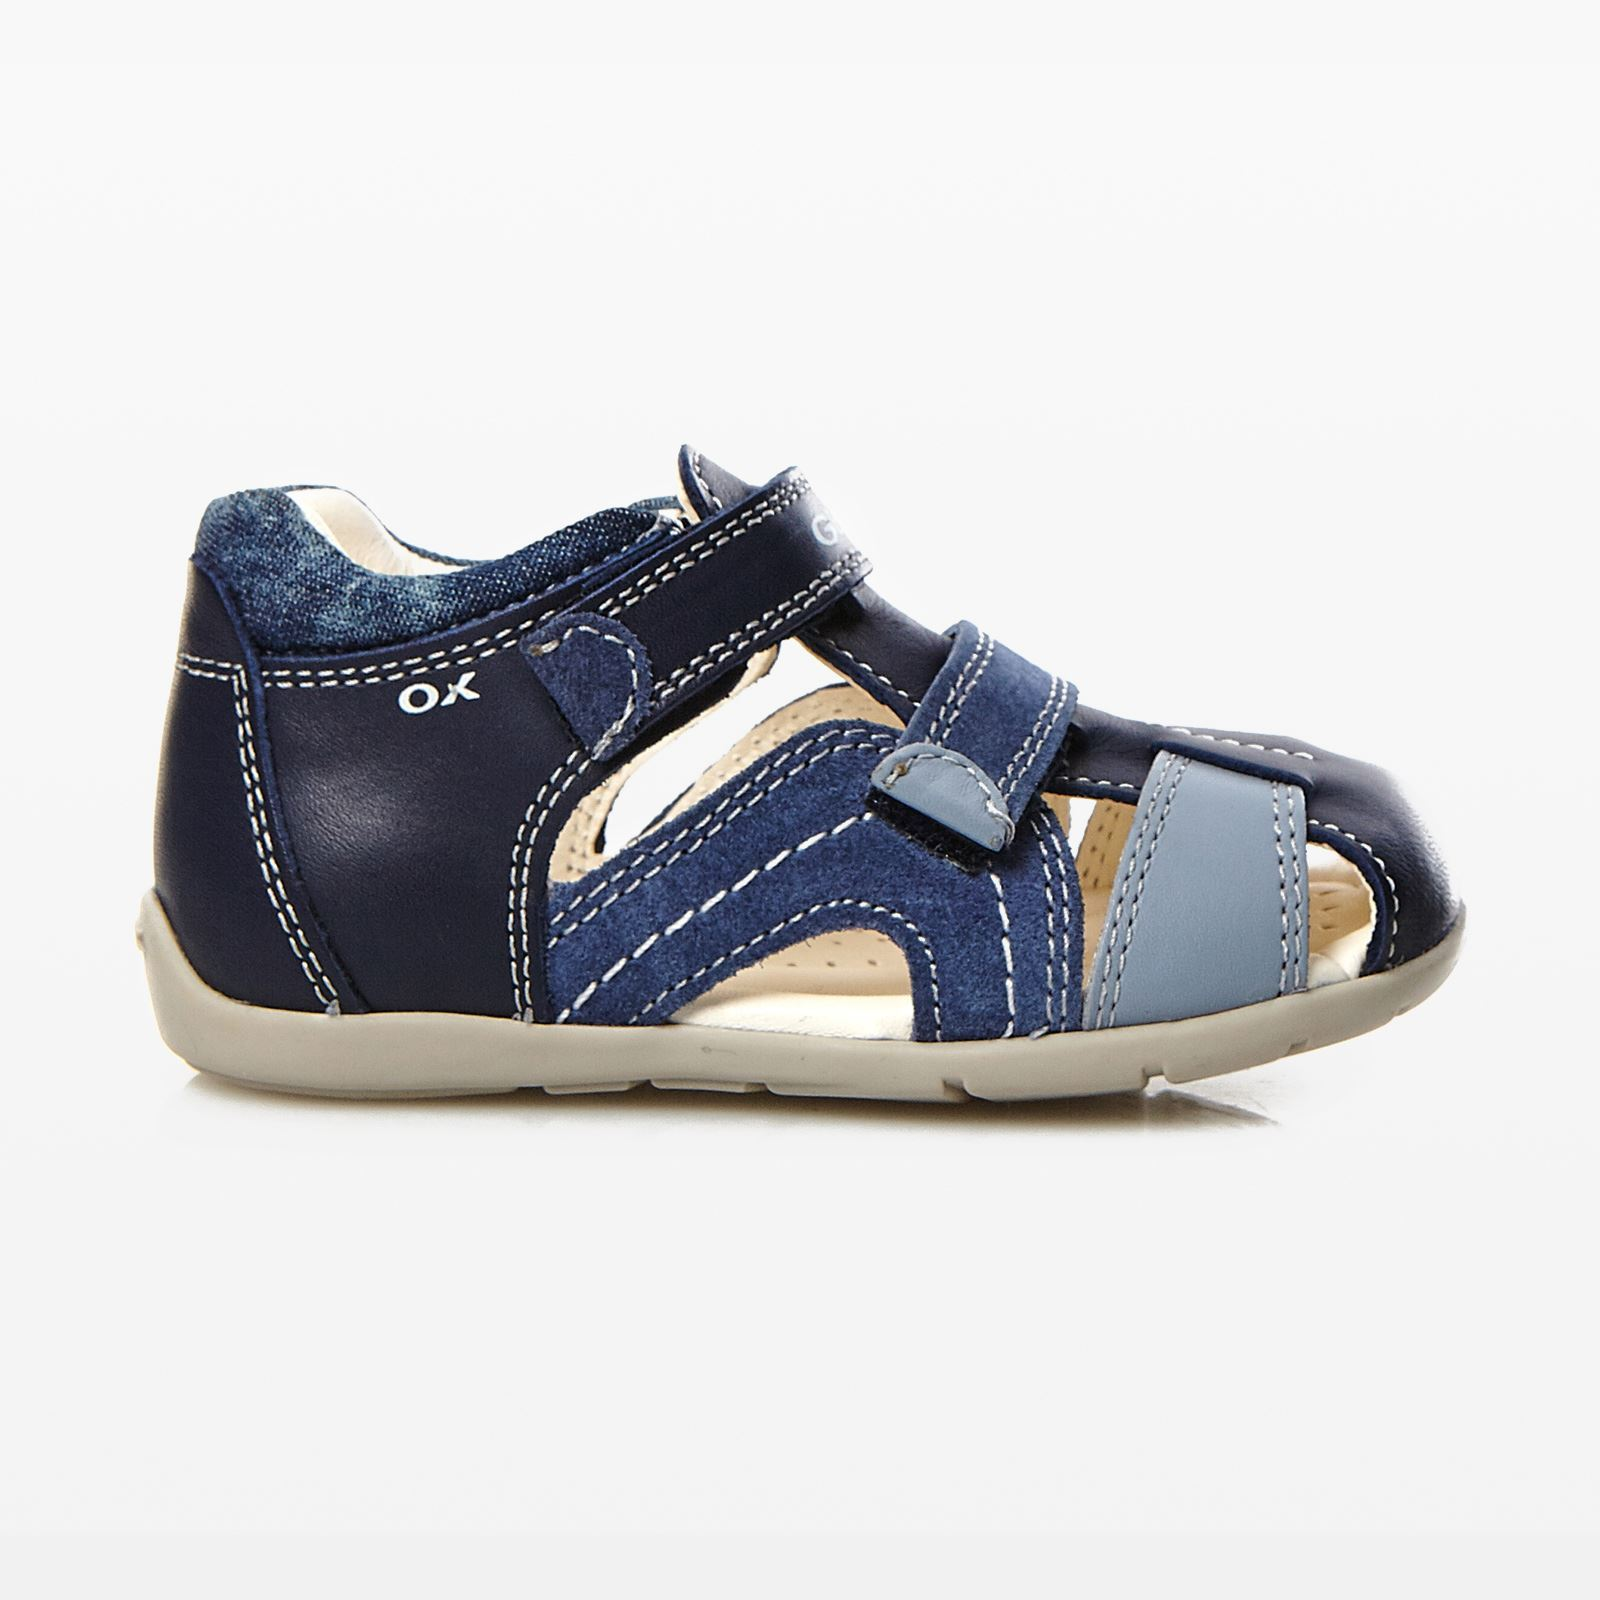 Chaussures à scratch Geox Kaytan beiges Casual fille 5vCuXYGs